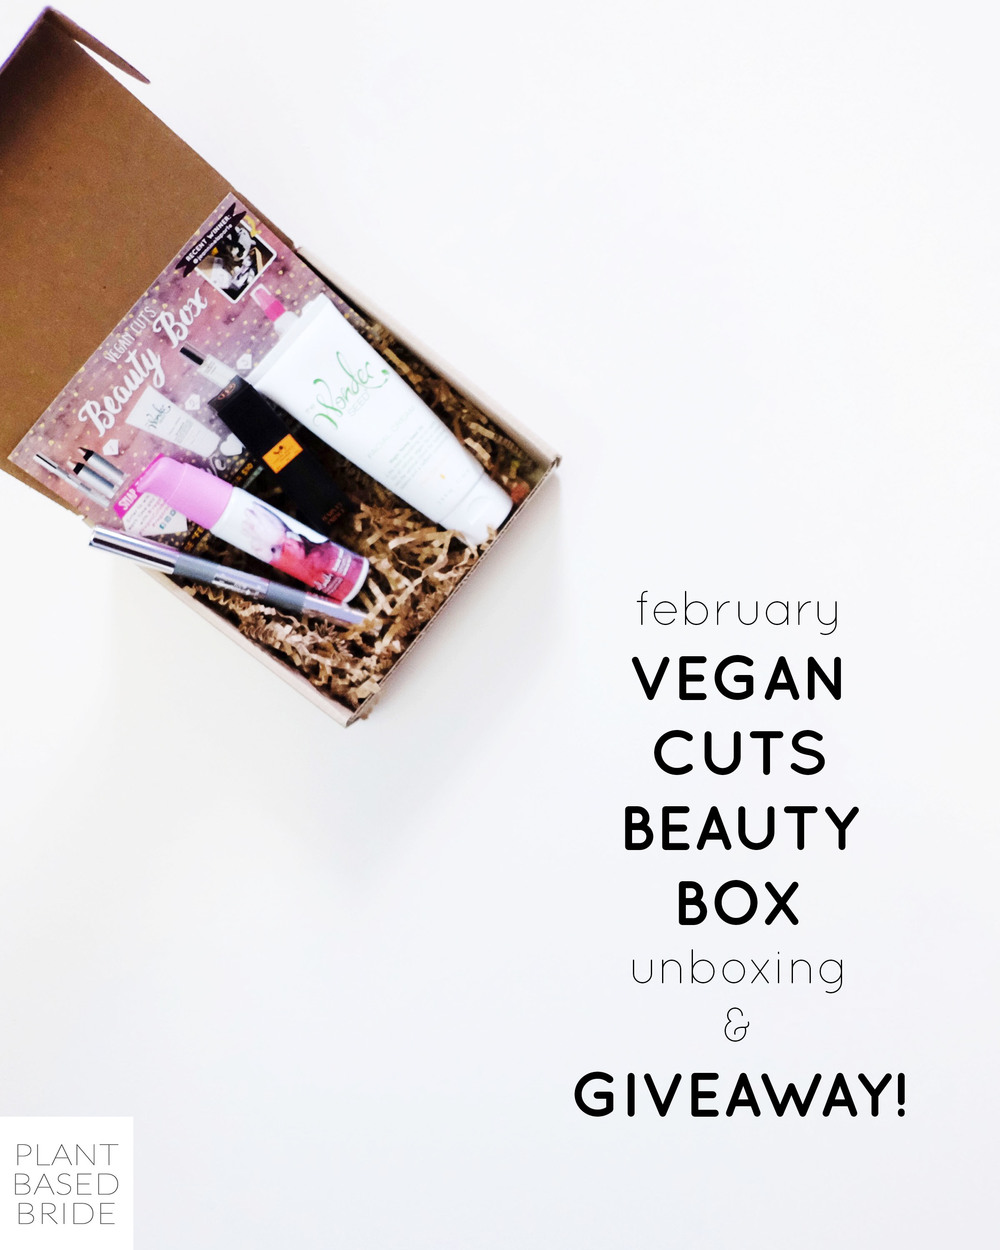 Check out this February Vegan Cuts Beauty Box unboxing video and enter the giveaway to win your own! // Plant Based Bride